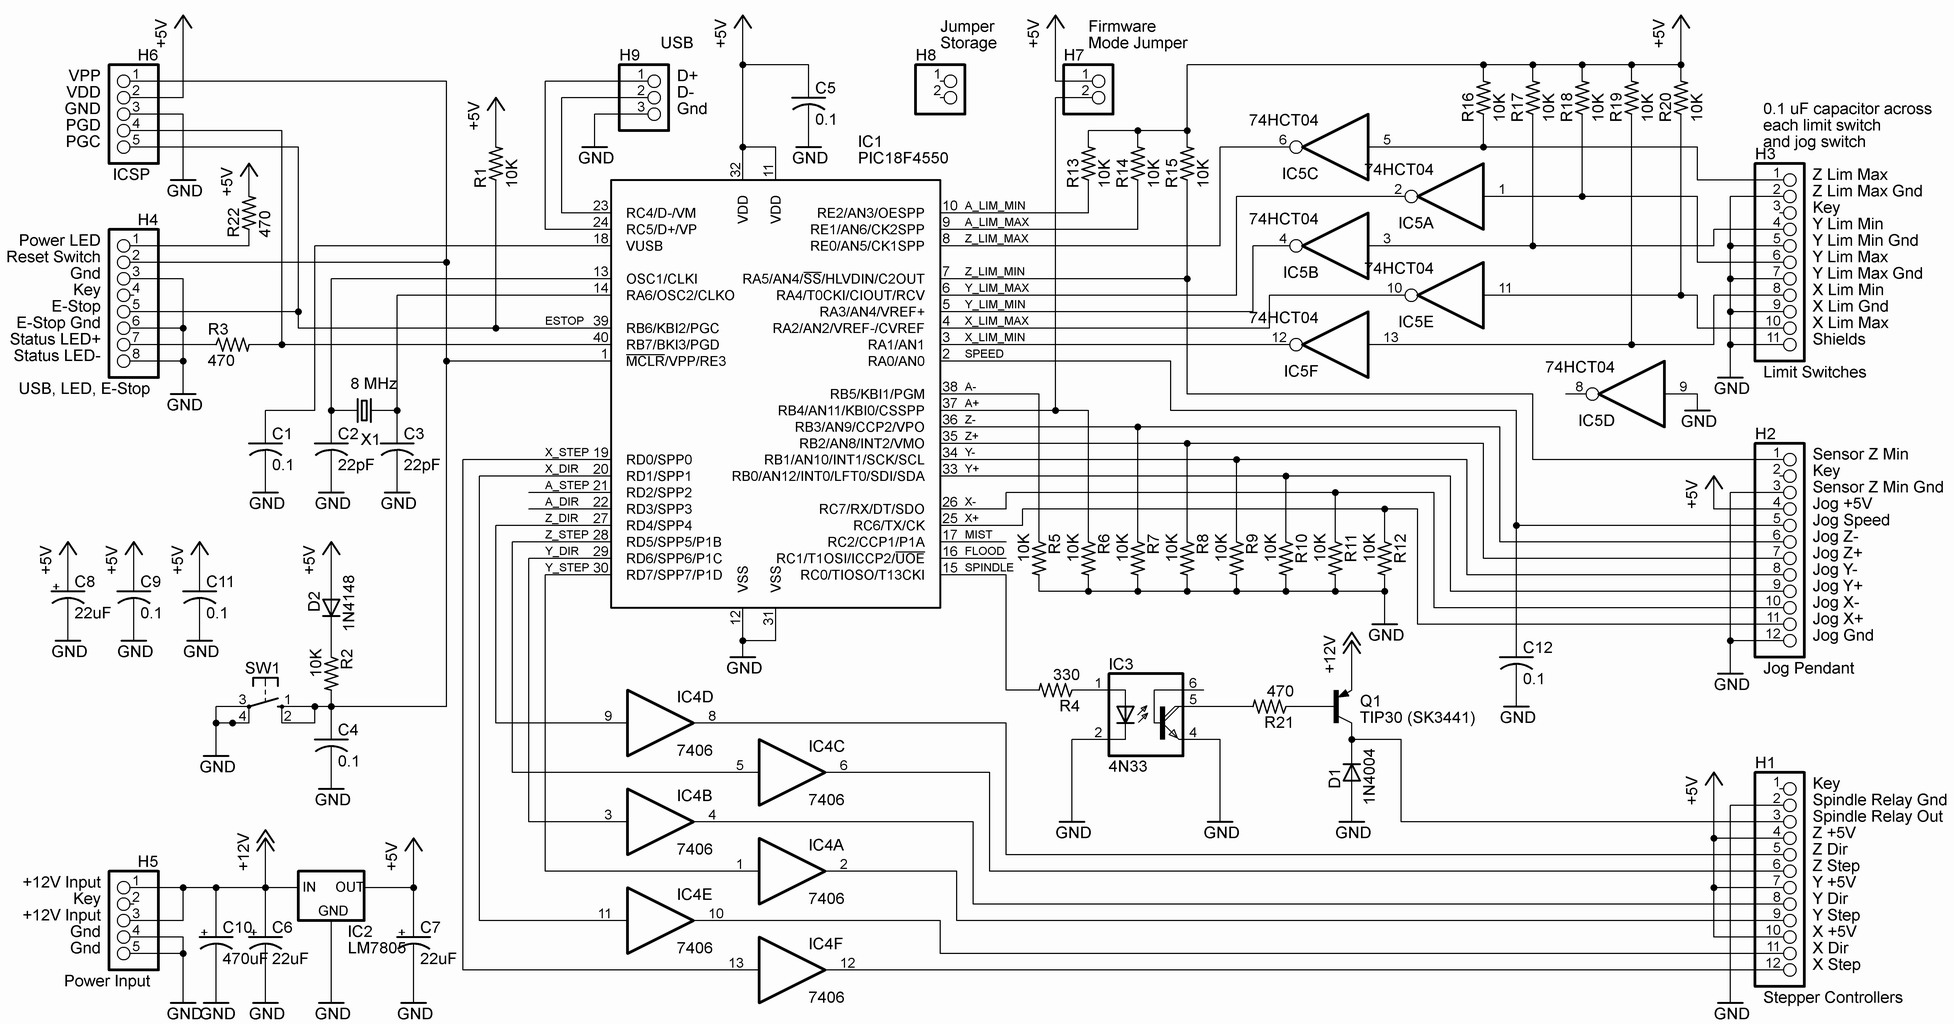 CNC Machine – markwtech on cnc parallel port controller schematic, usb keyboard schematic, usb power supply schematic,